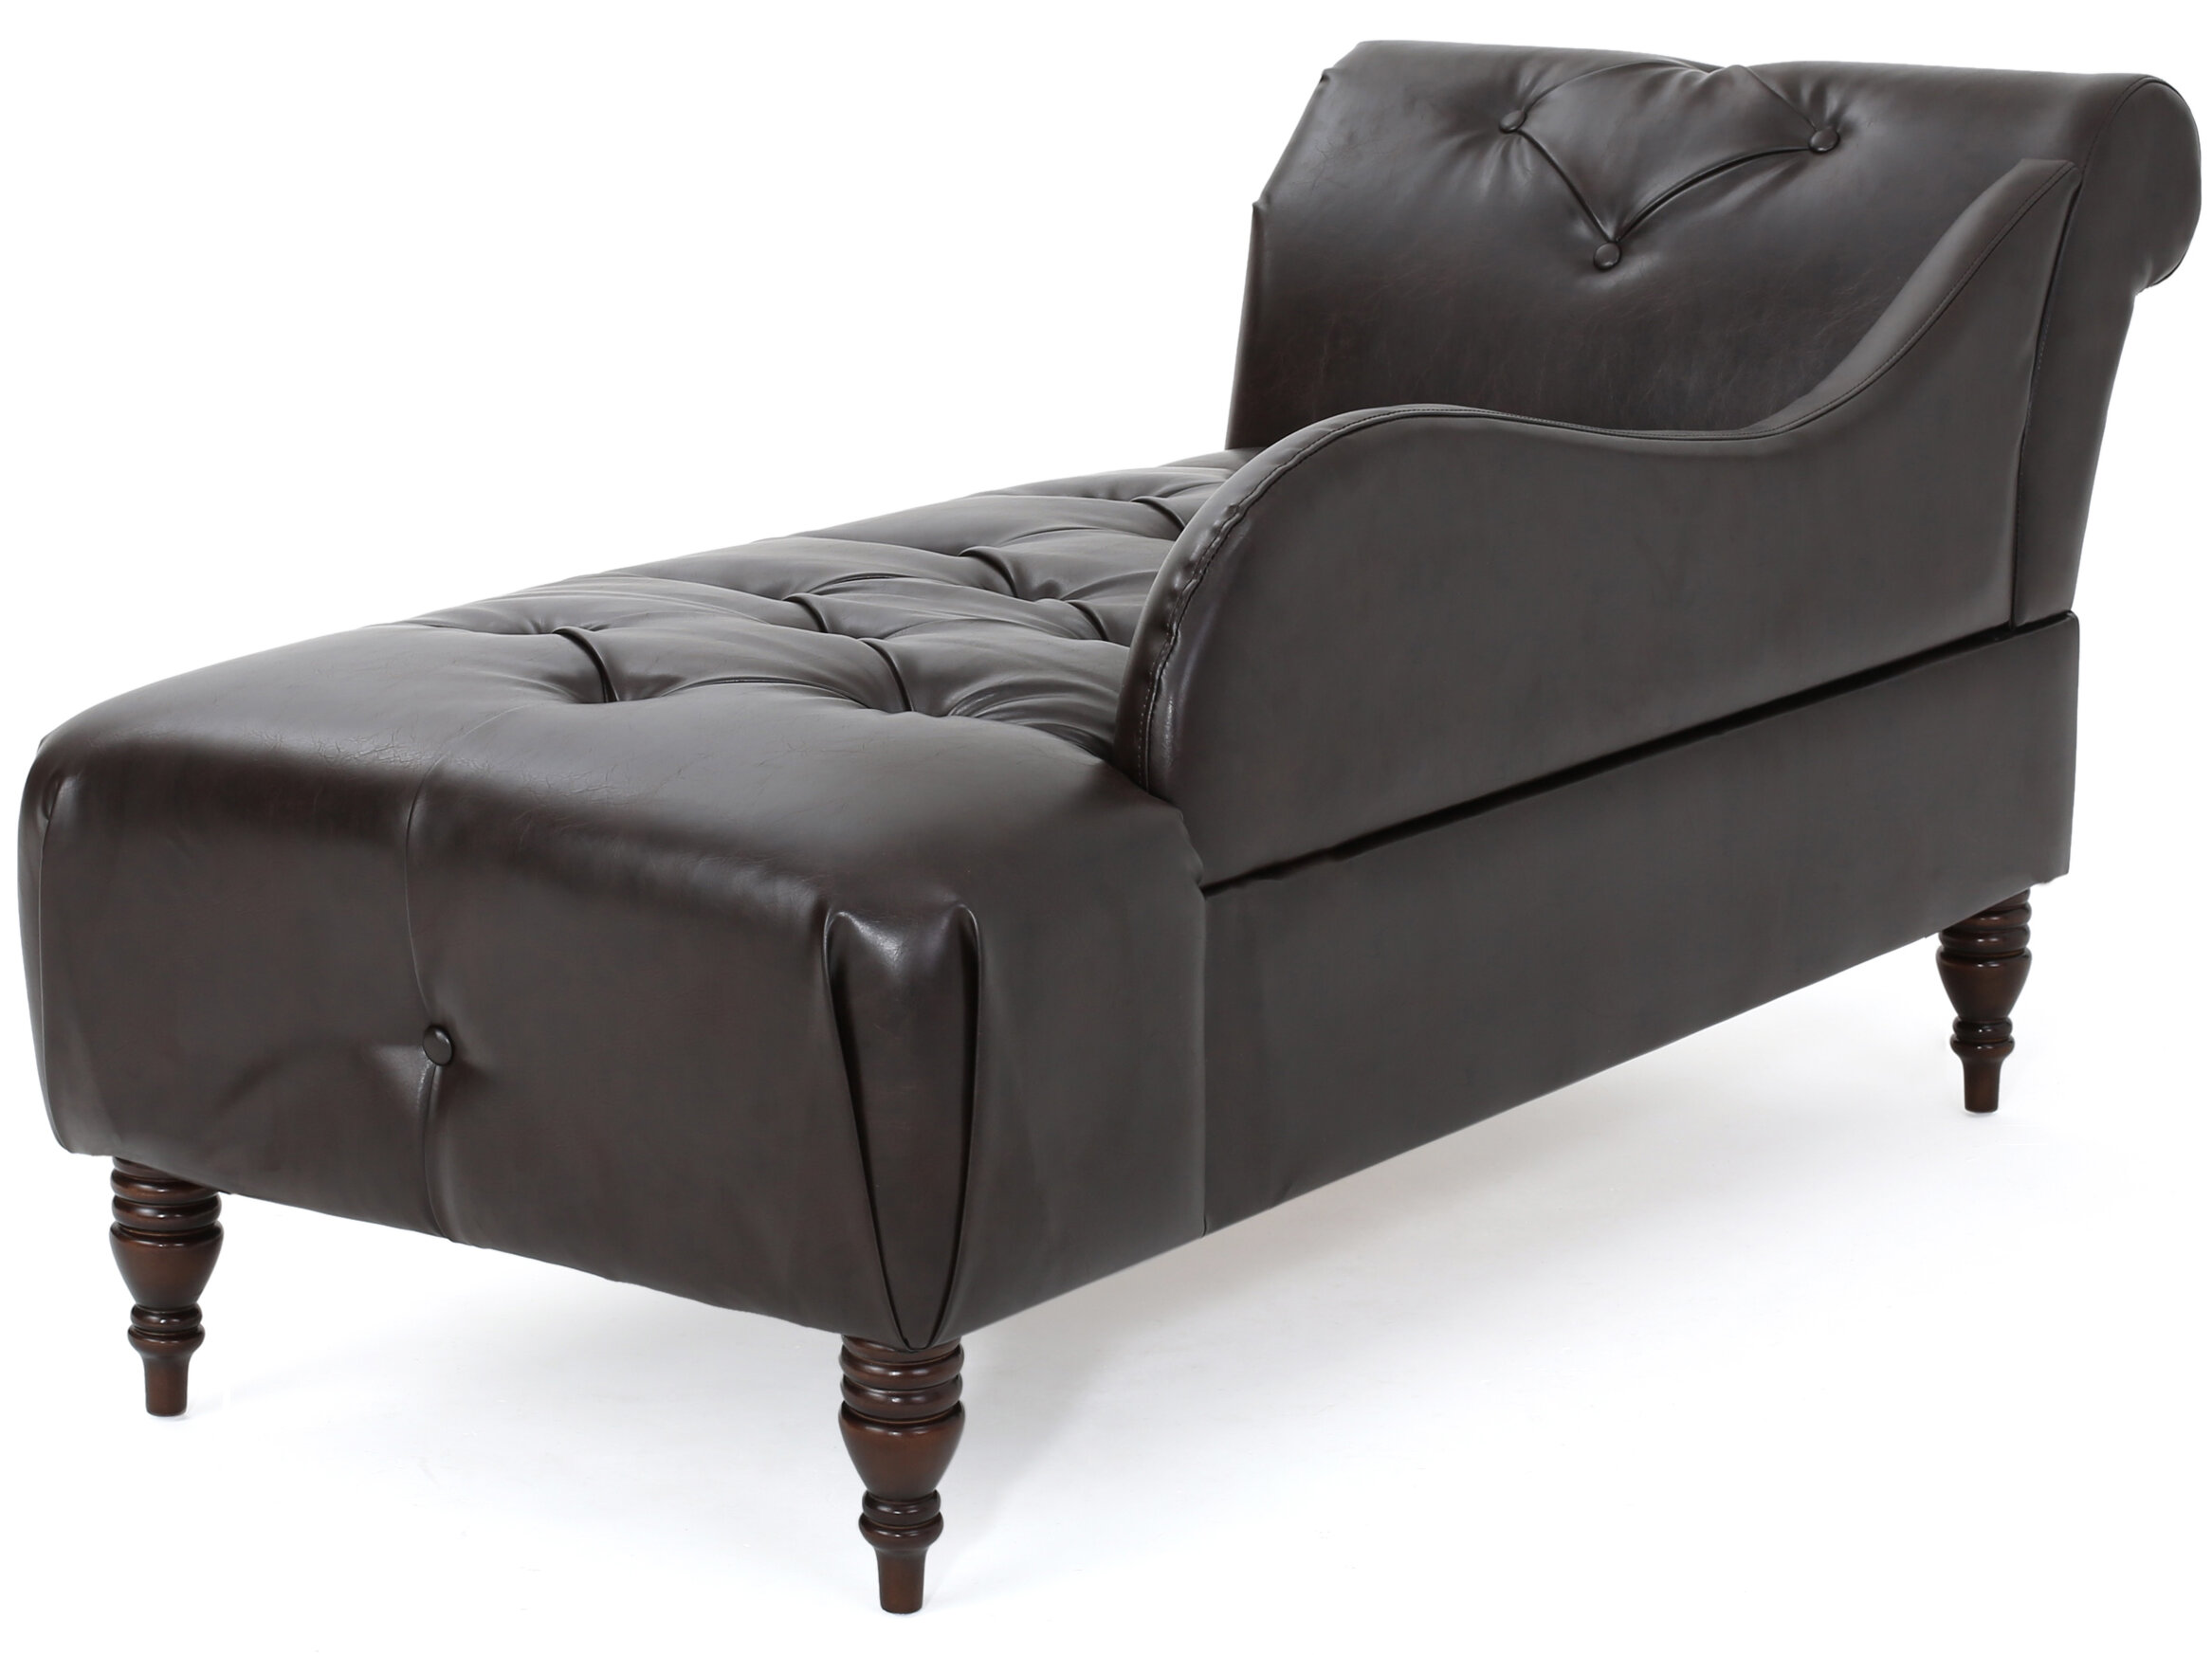 leather raymour productmain pd lounge chaise greccio granite flanigan nati